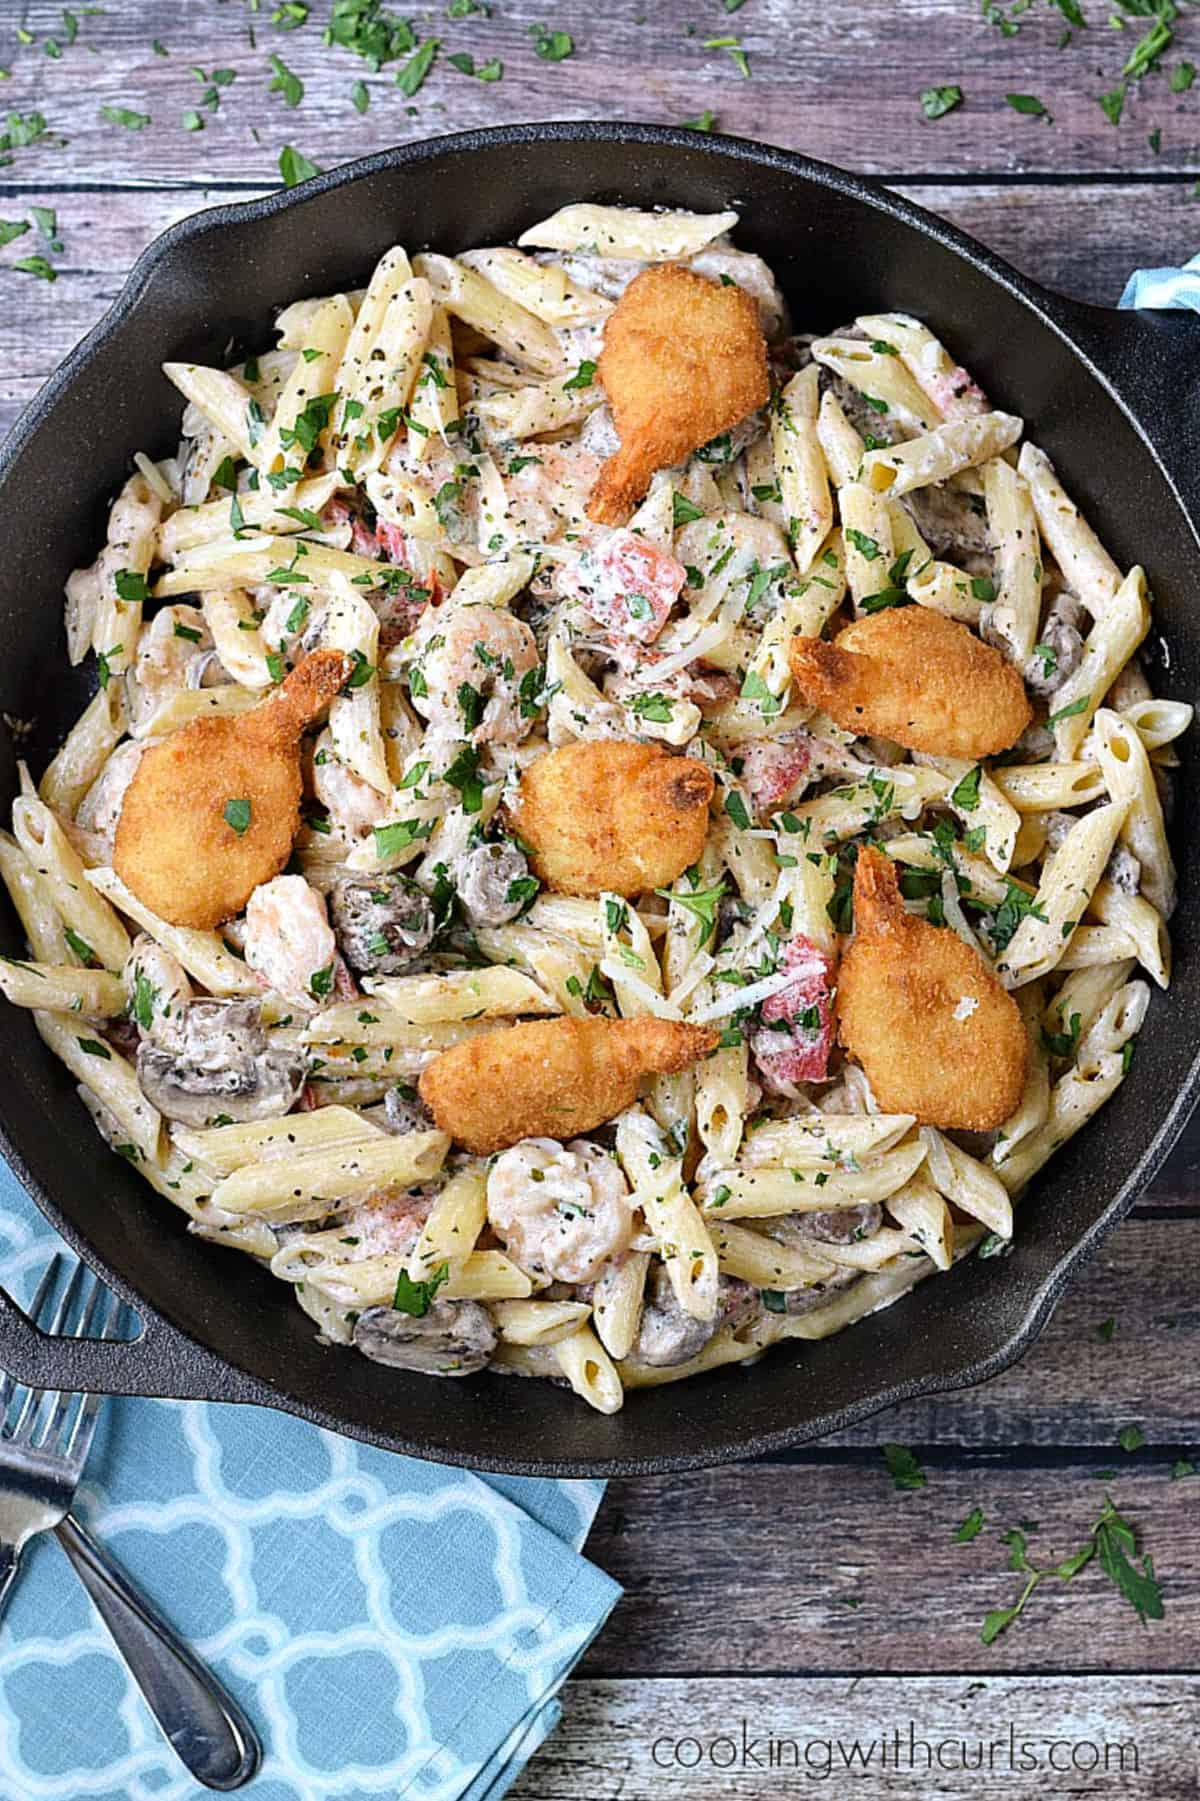 Looking down on a cast iron skillet filled with penne pasta, creamy sauce, tomatoes, mushrooms, and breaded shrimp.